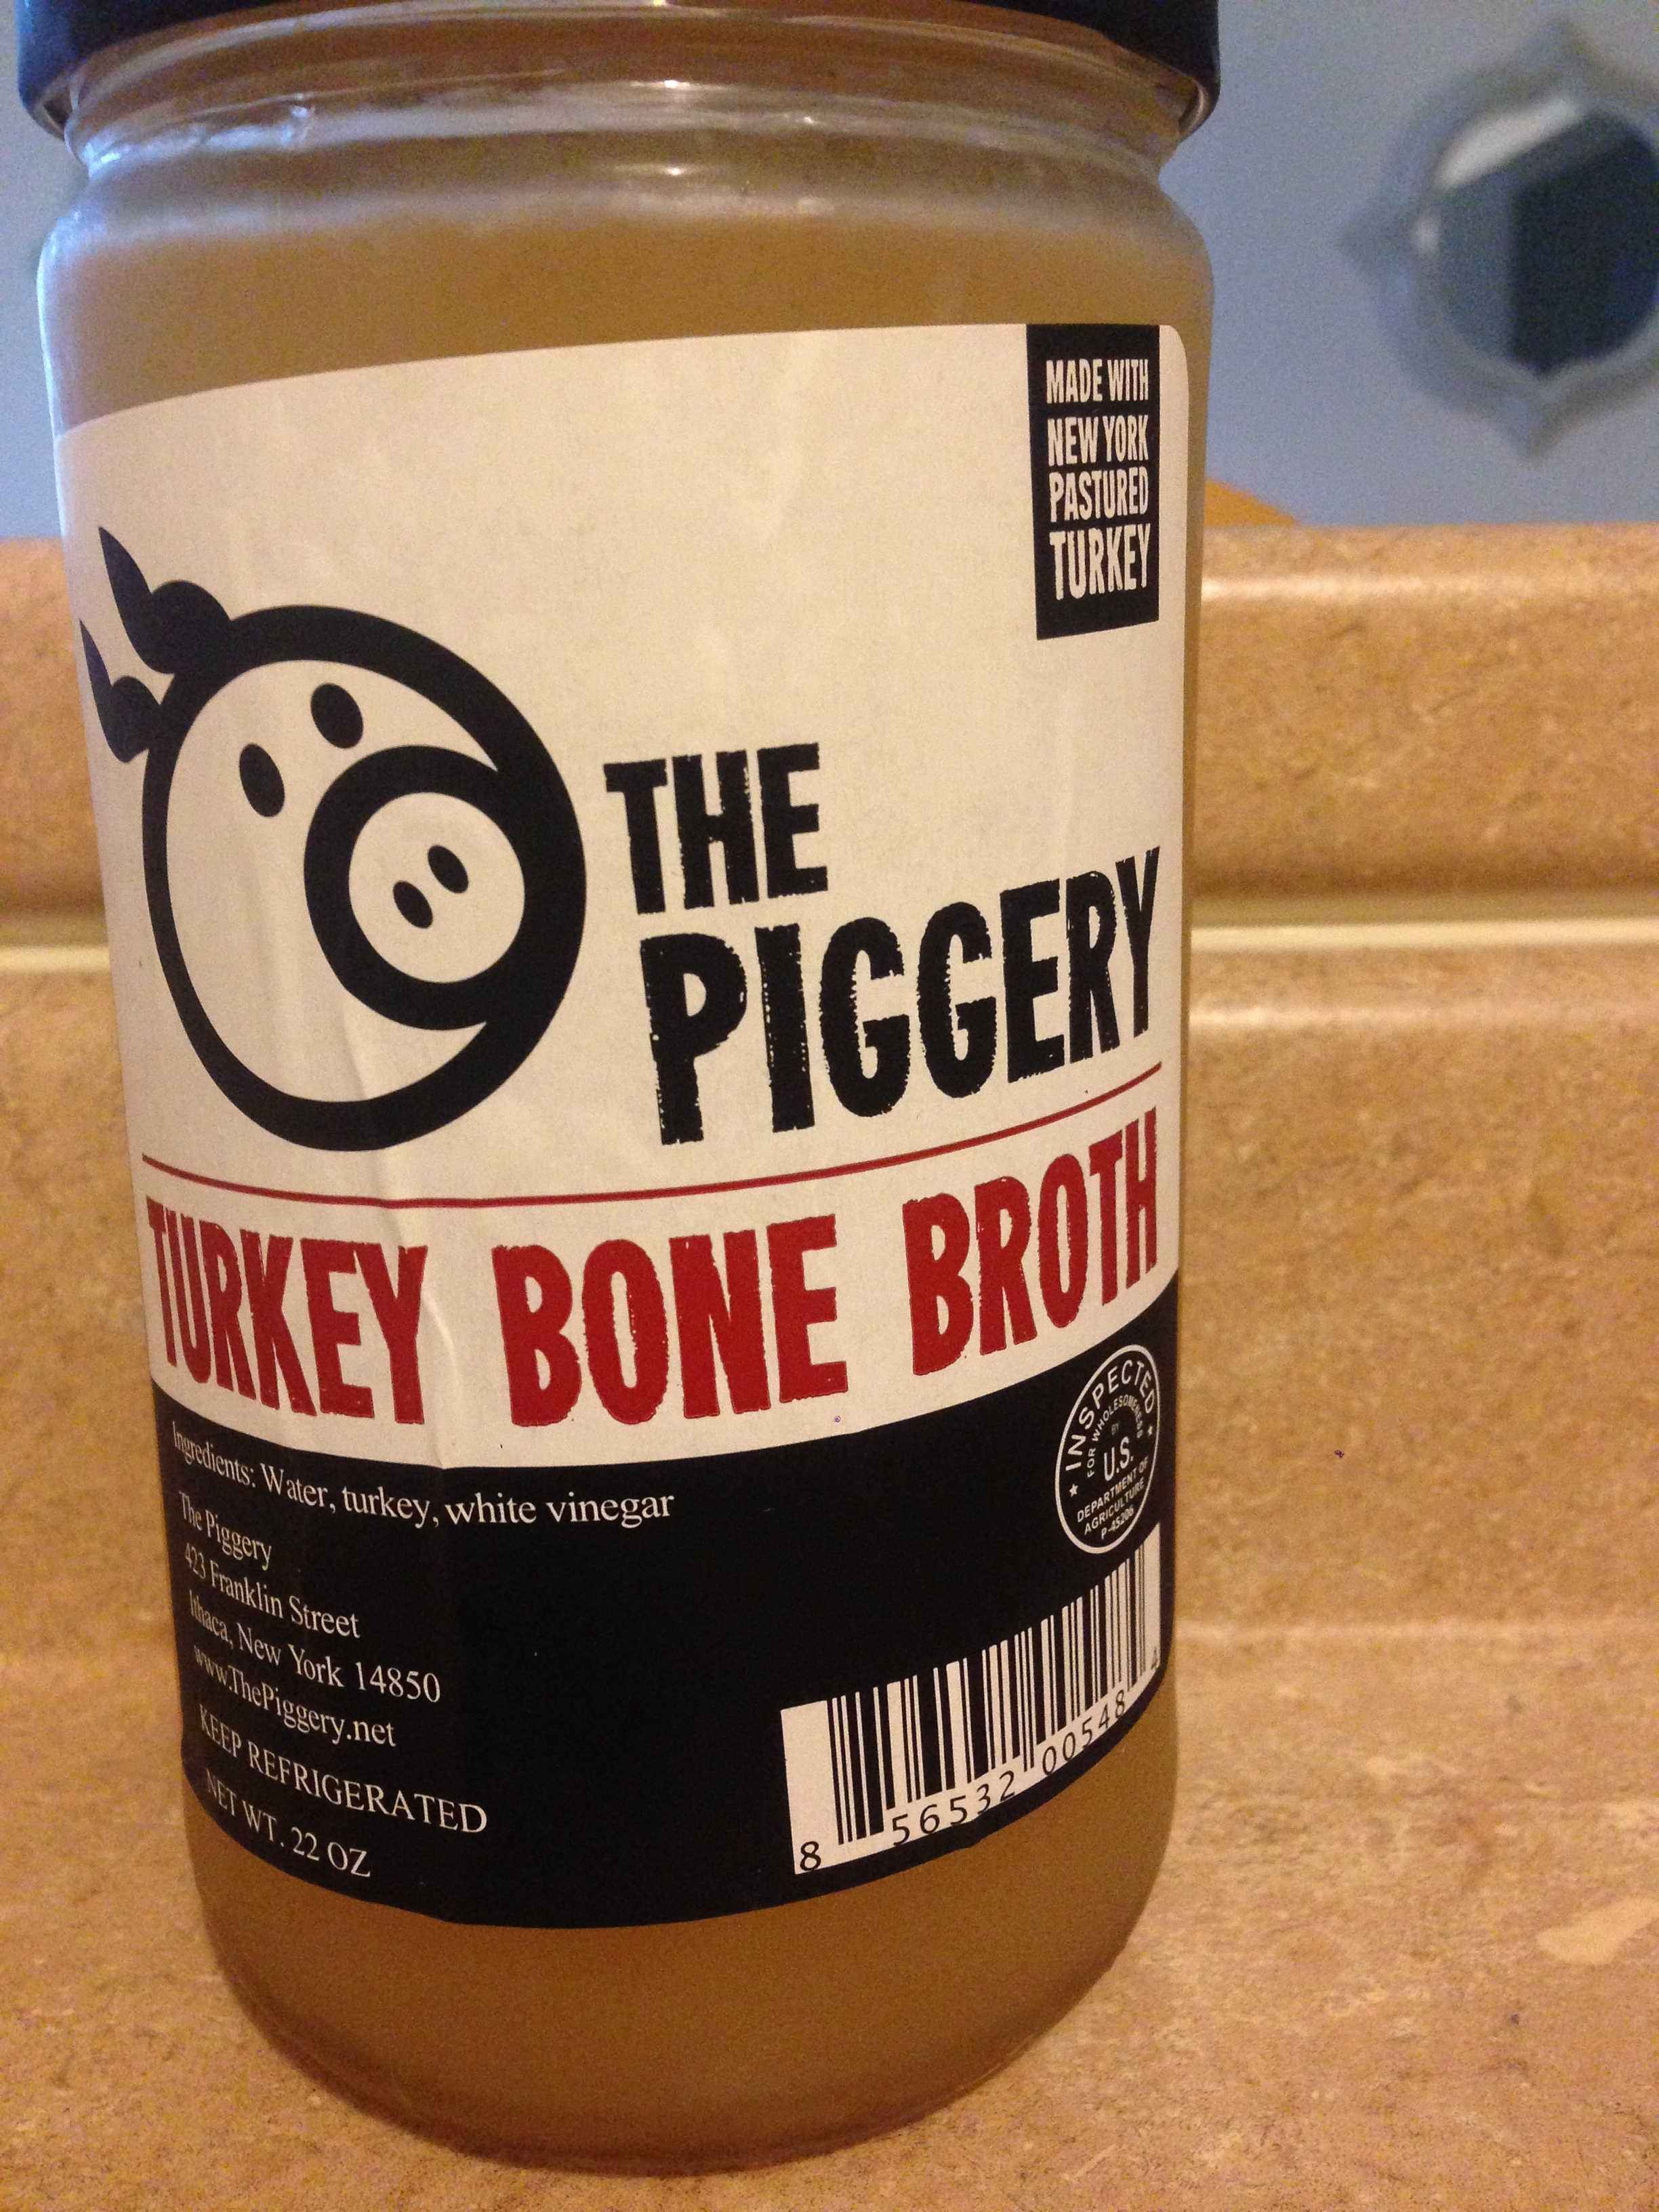 If you're lucky like me, you can also buy homemade bone broth from your local meat's butcher shop.  Amazing.